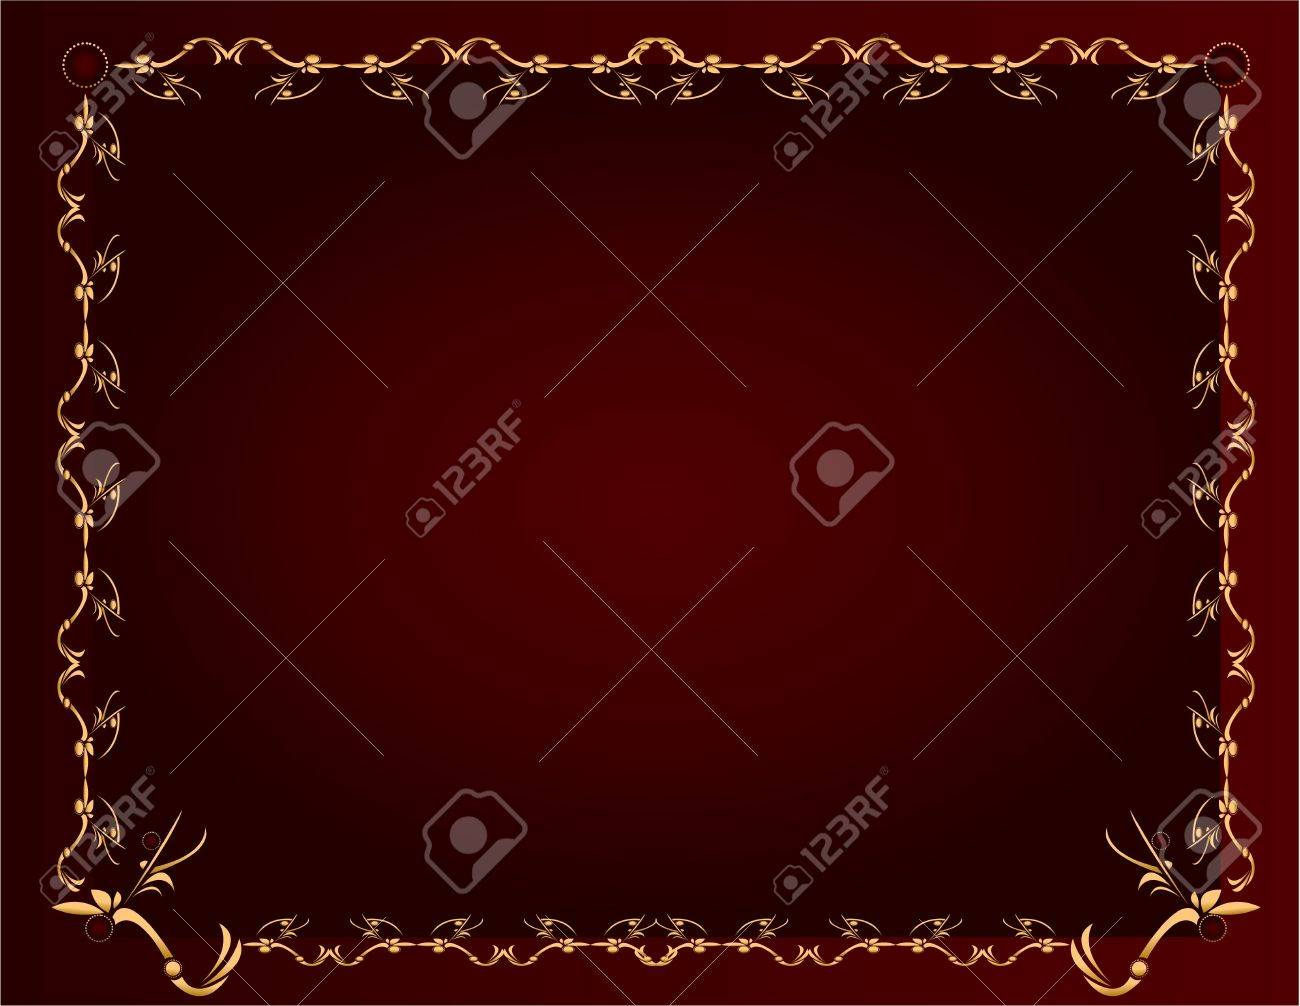 Gold abstract design on a burgundy background with space for copy - 5162057